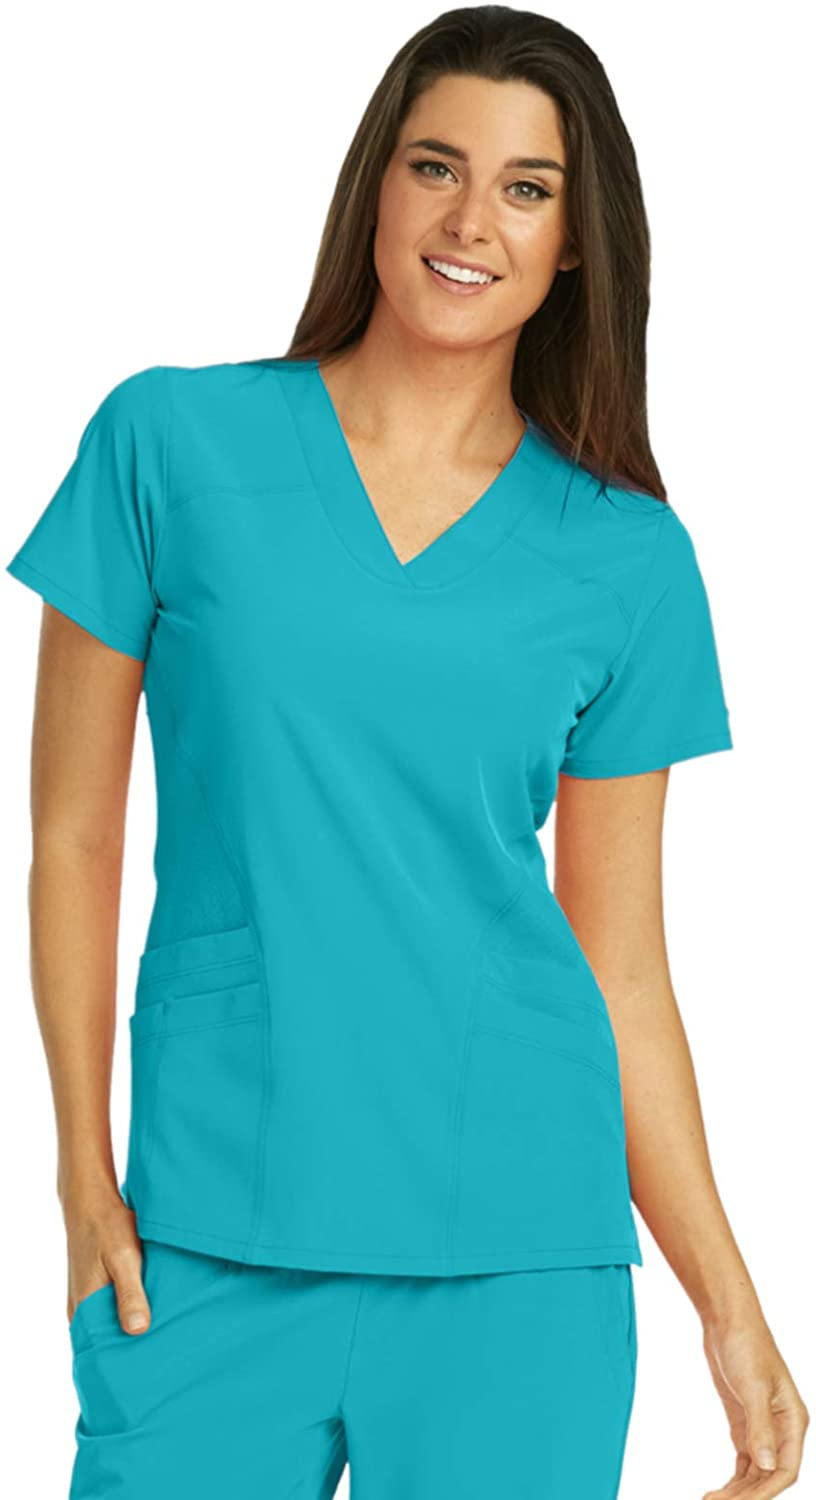 BARCO One 5106 Women's V-Neck Scrub Top Teal L